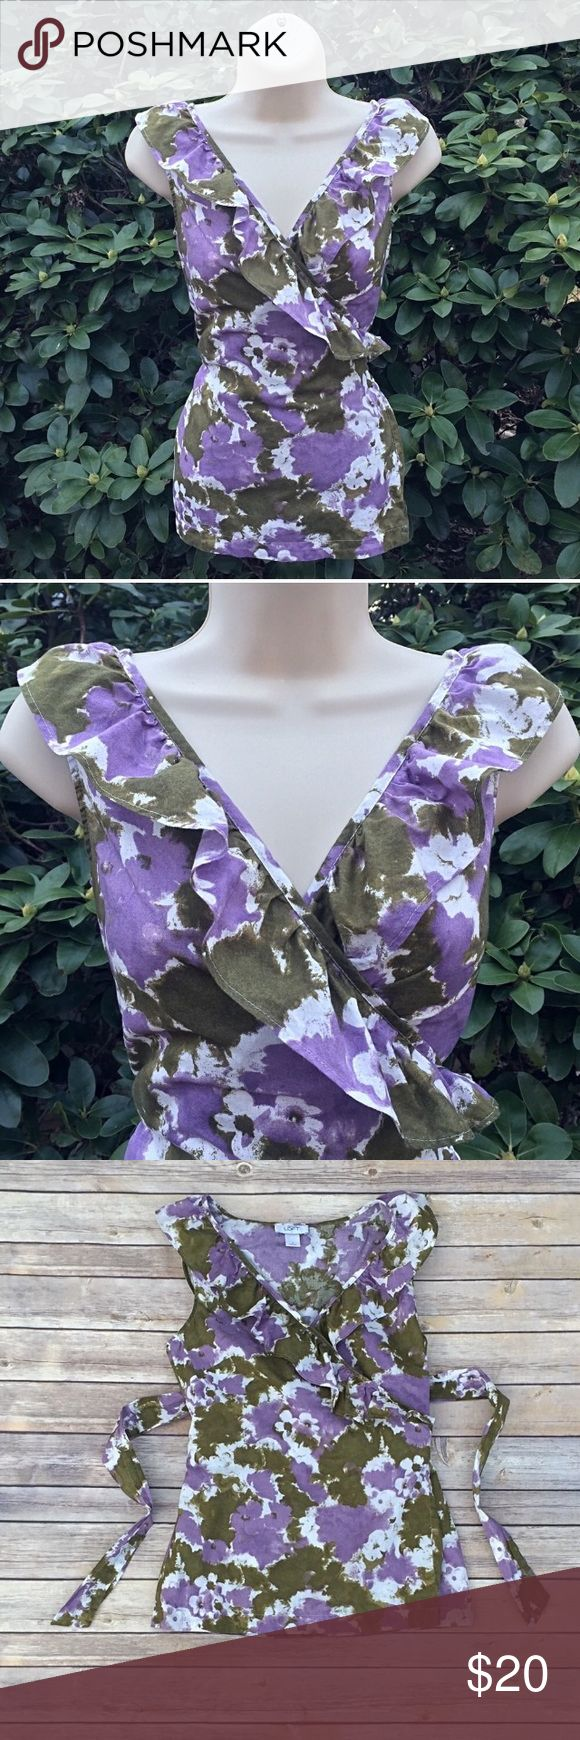 Gorgeous purple and green floral wrap top Super cute sleeveless floral wrap top from LOFT.  It has ruffles around the neckline and a cross-over v-neck.  Long ties to wrap and adjust waist and chest size.  100% cotton.  Excellent condition.  Size small - see picture for exact measurements. LOFT Tops